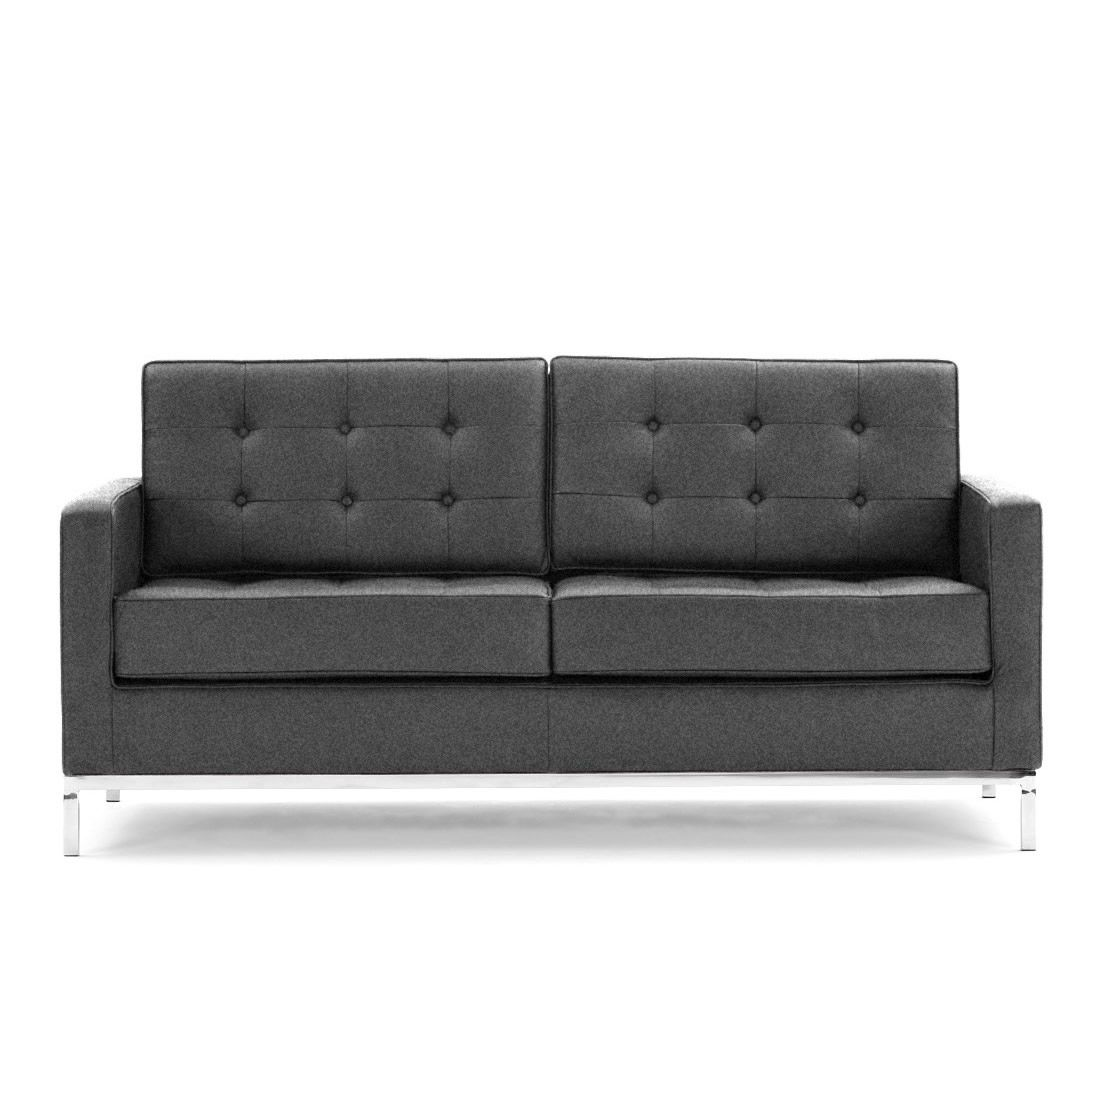 Ebay Sofa Grey 765 New From Ebay Retail Free Postage Florence Knoll 2 Seater